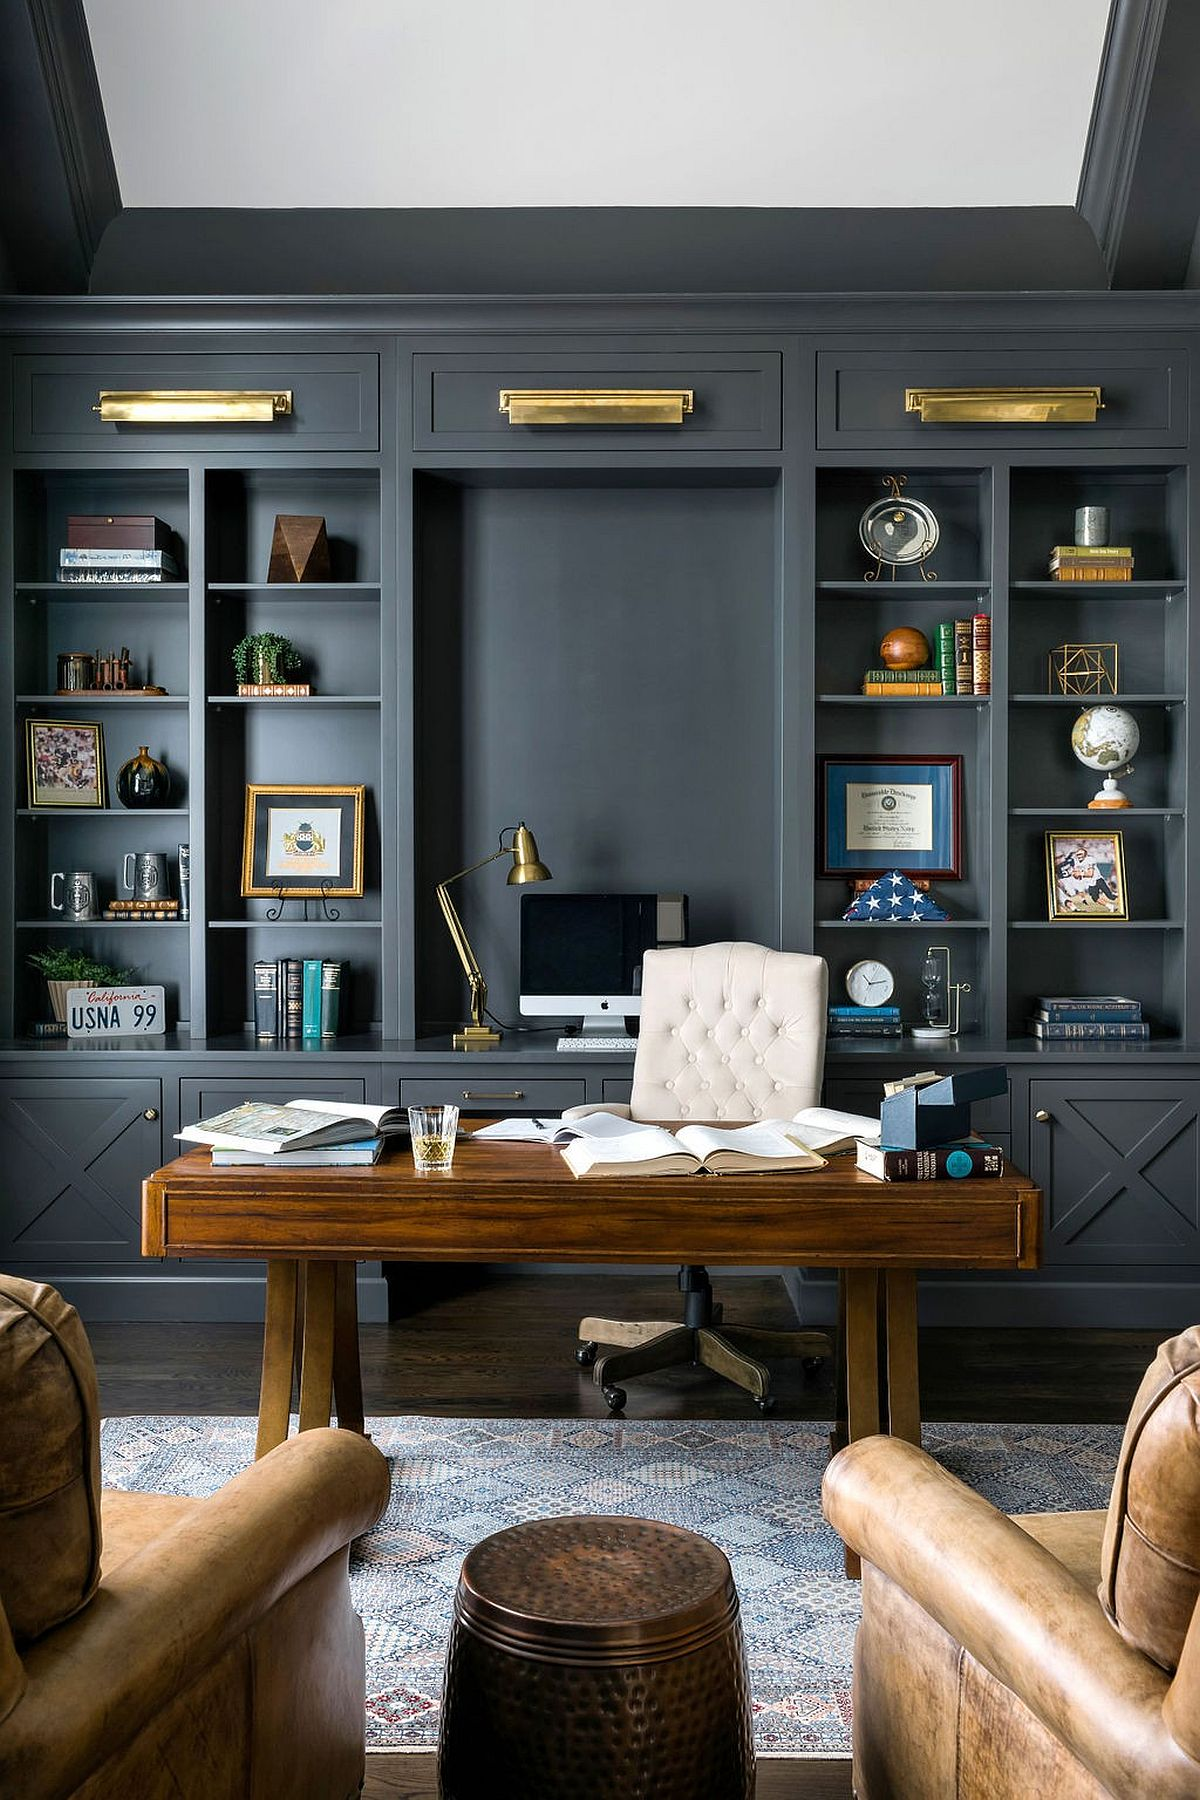 Polished-contemporary-home-office-in-gray-with-cutsom-wooden-desk-58722